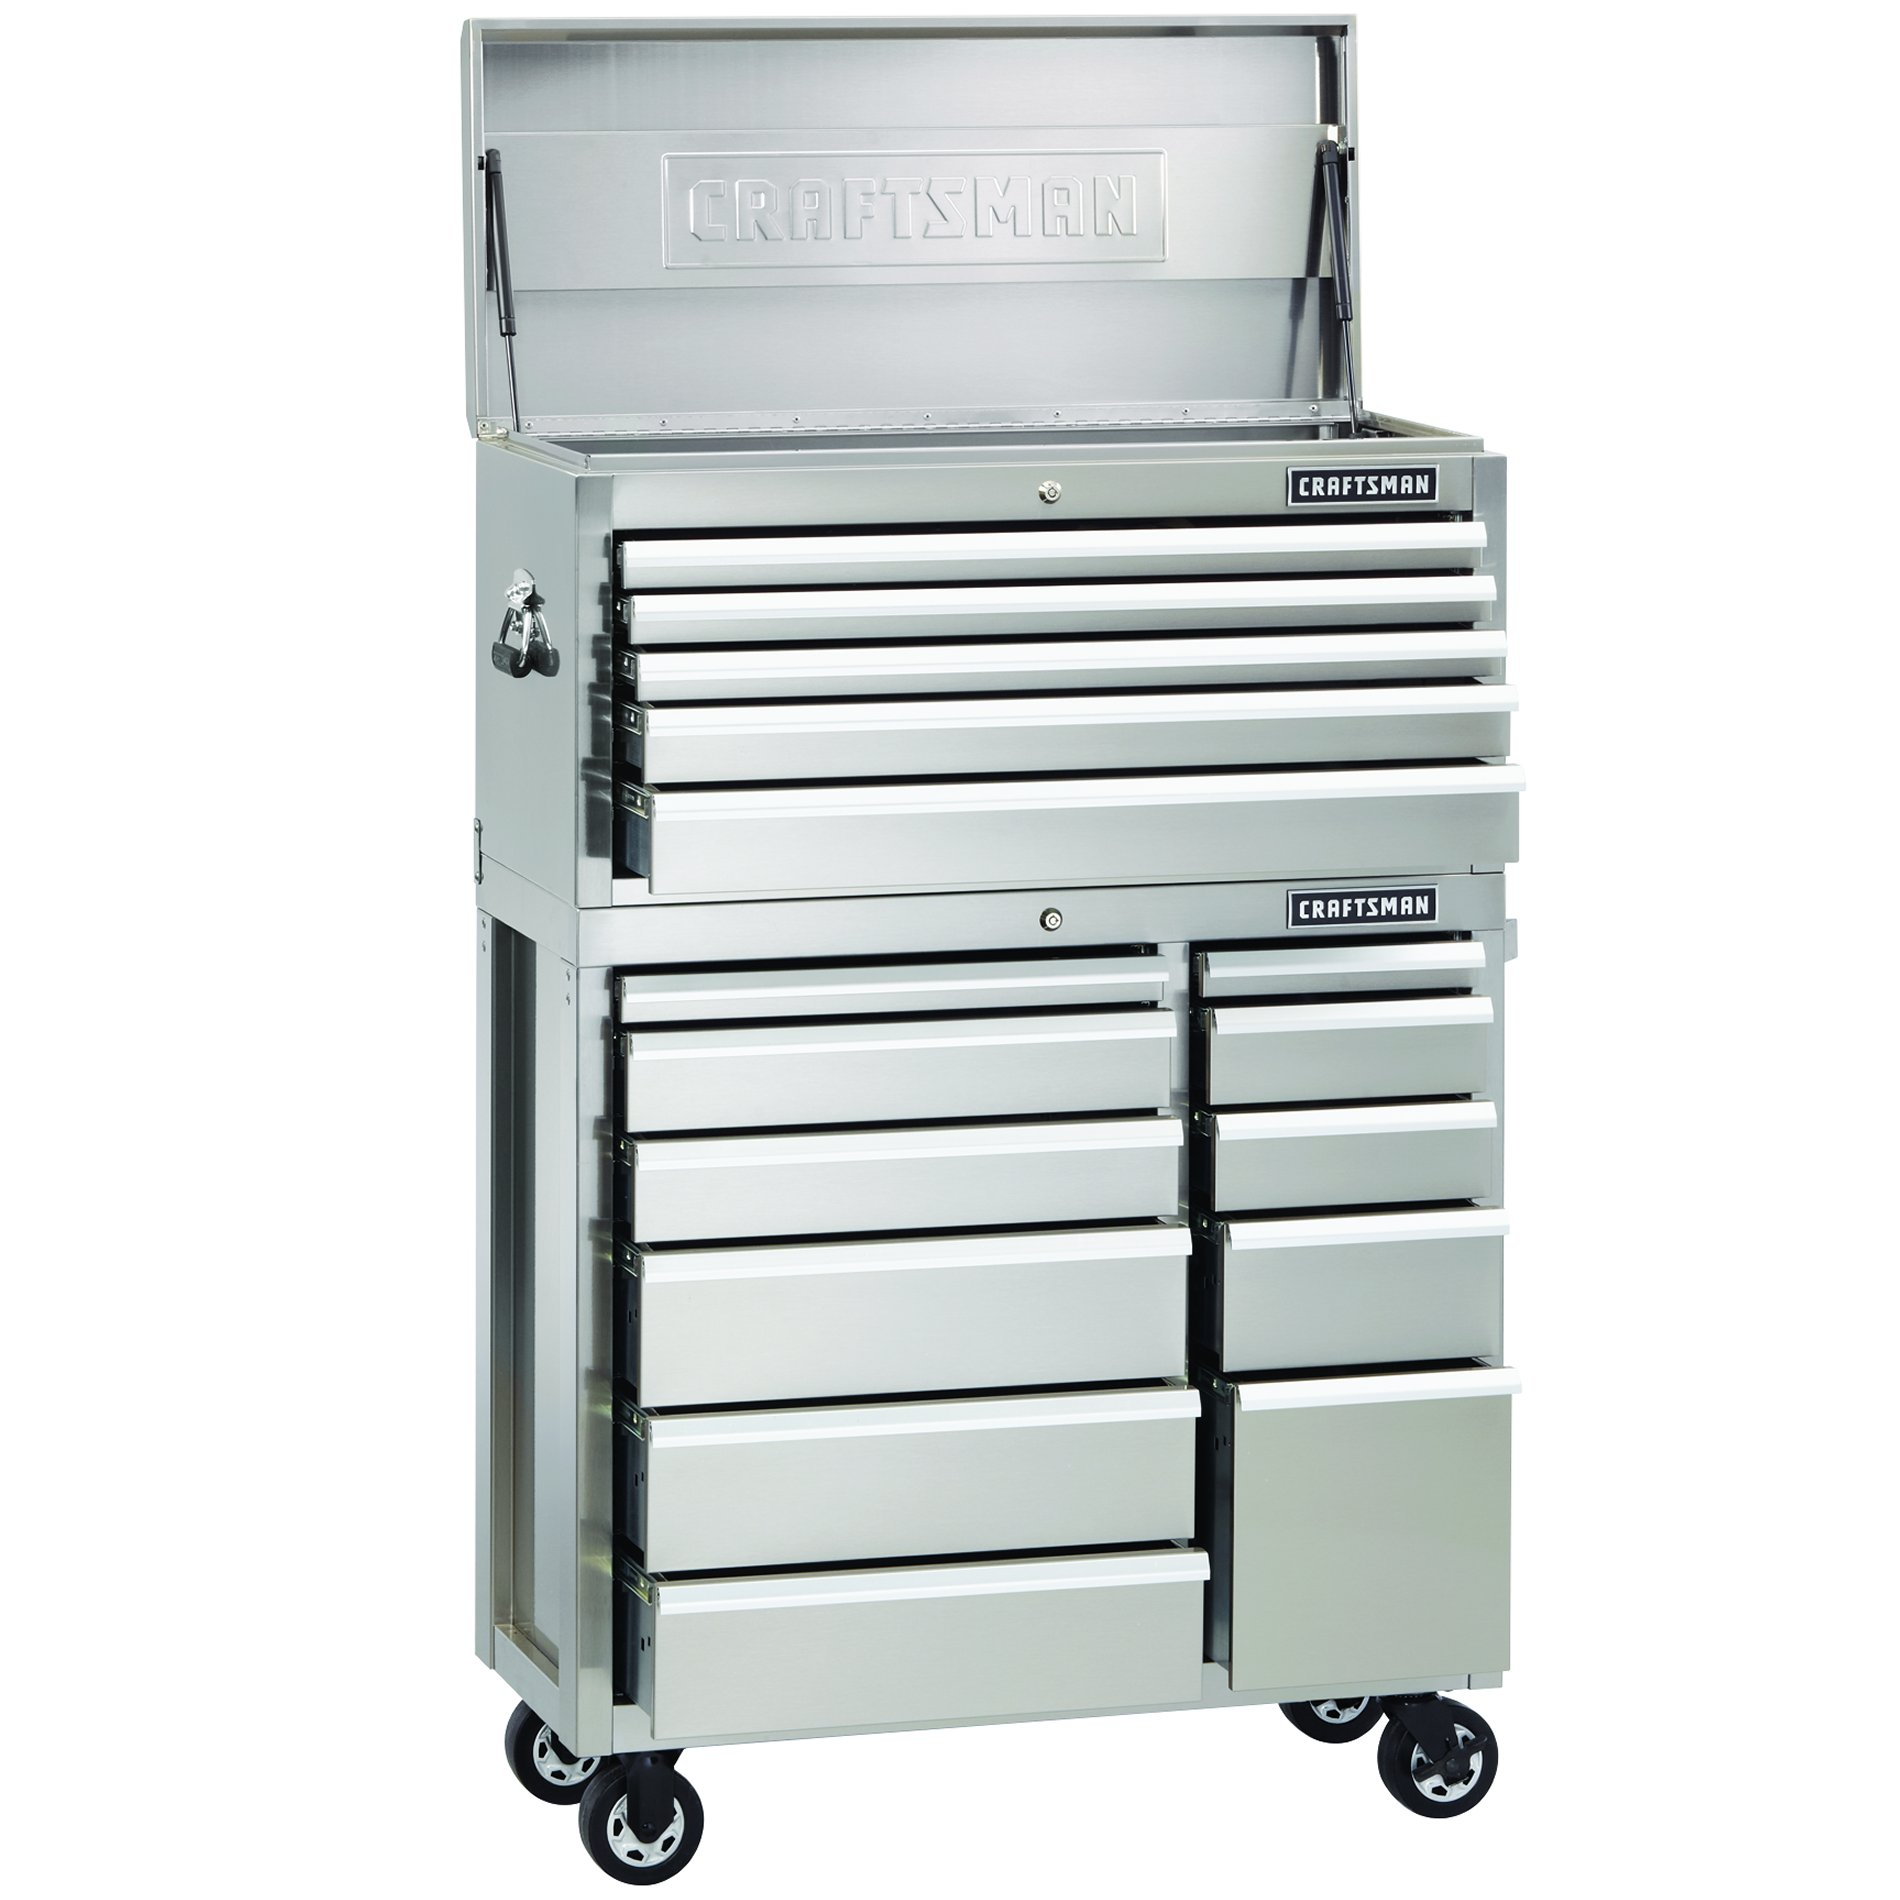 Craftsman 40-Inch Premium Heavy-Duty  Rolling Cabinet - Stainless Steel